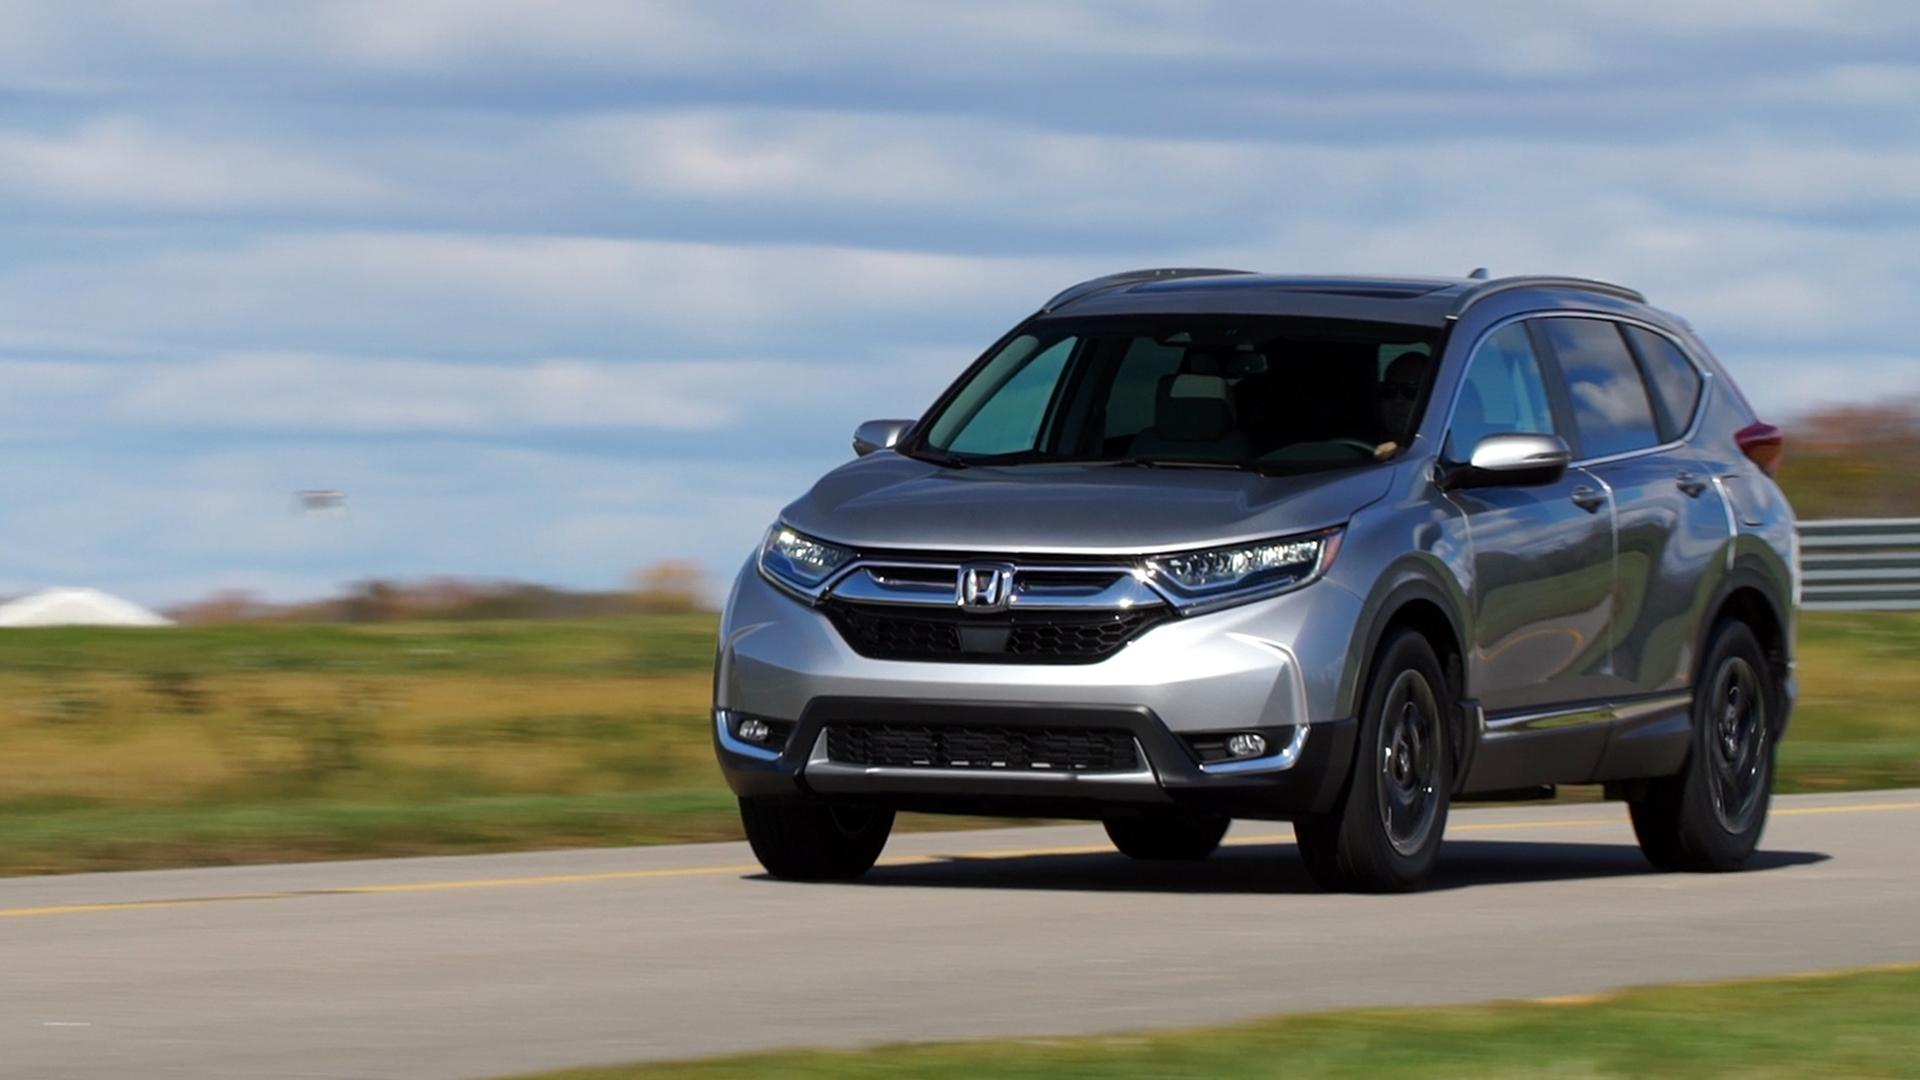 More From Consumer Reports. Talking Cars 172: Honda CR-V Engine Issues,  Nissan Altima